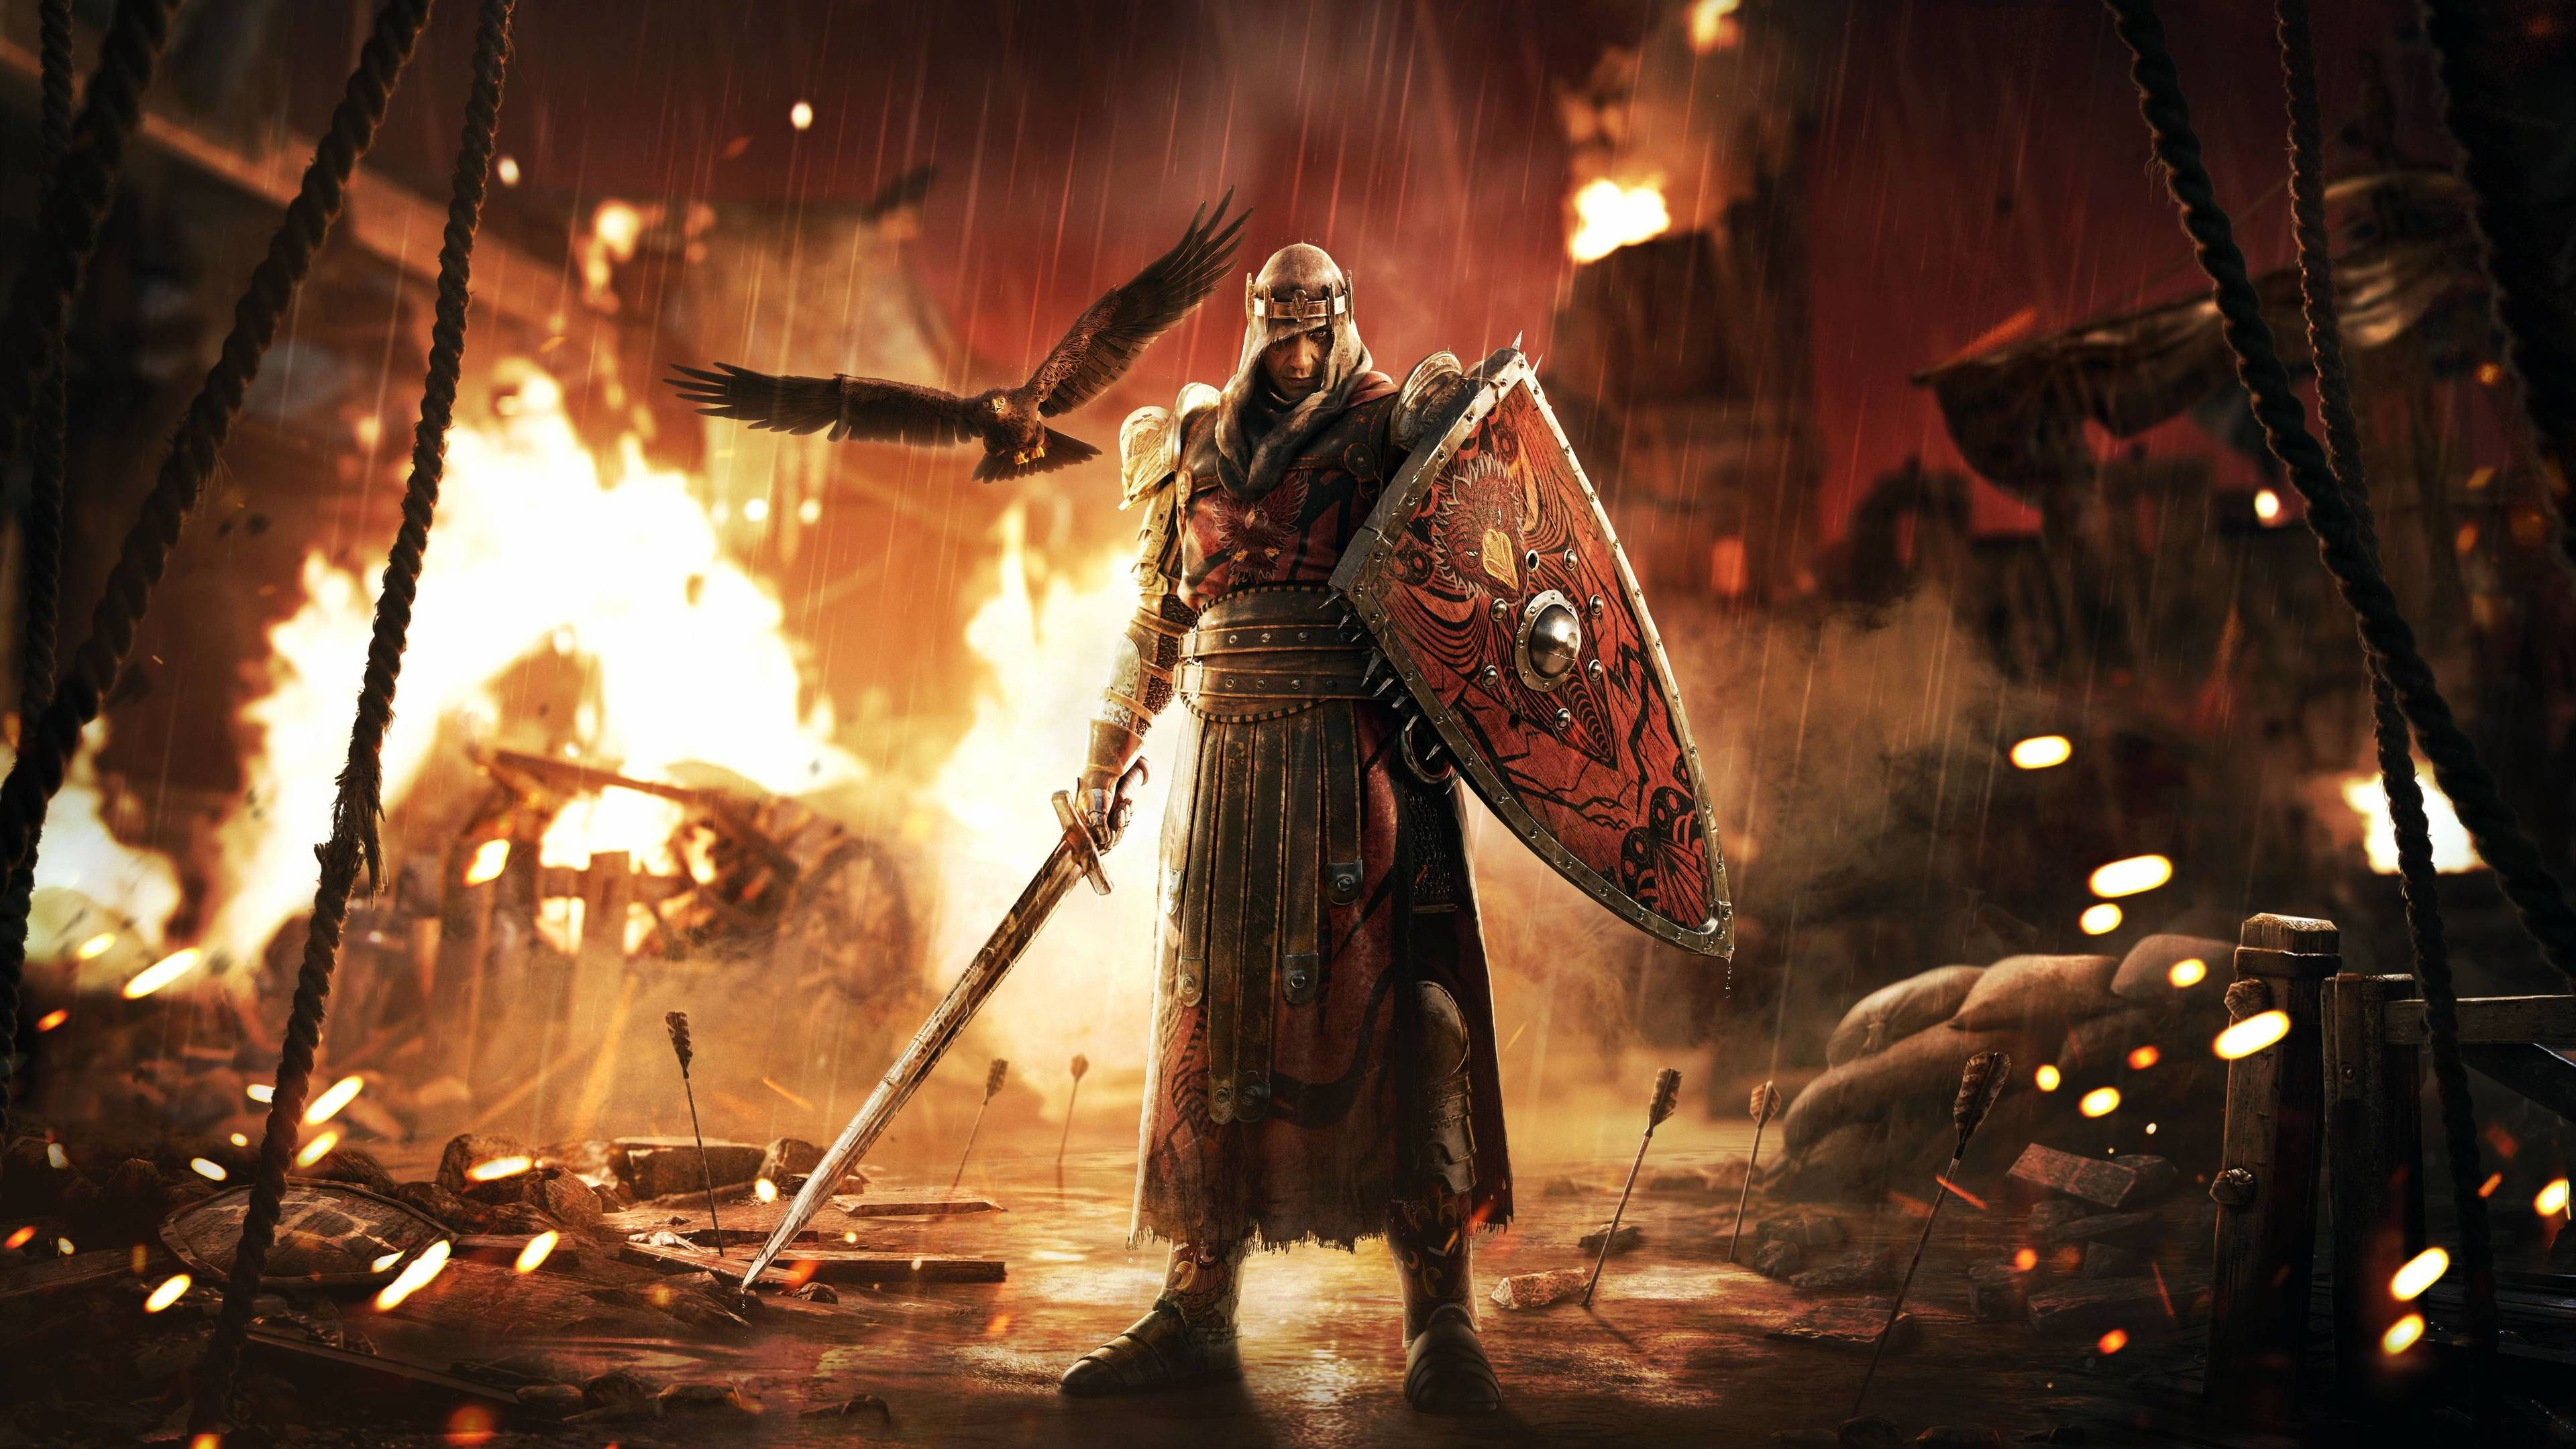 For Honor 2019 New 4k Xbox Games Wallpapers Ps Games Wallpapers Pc Games Wallpapers Hd Wallpapers In 2020 4k Gaming Wallpaper Gaming Wallpapers Pc Games Wallpapers